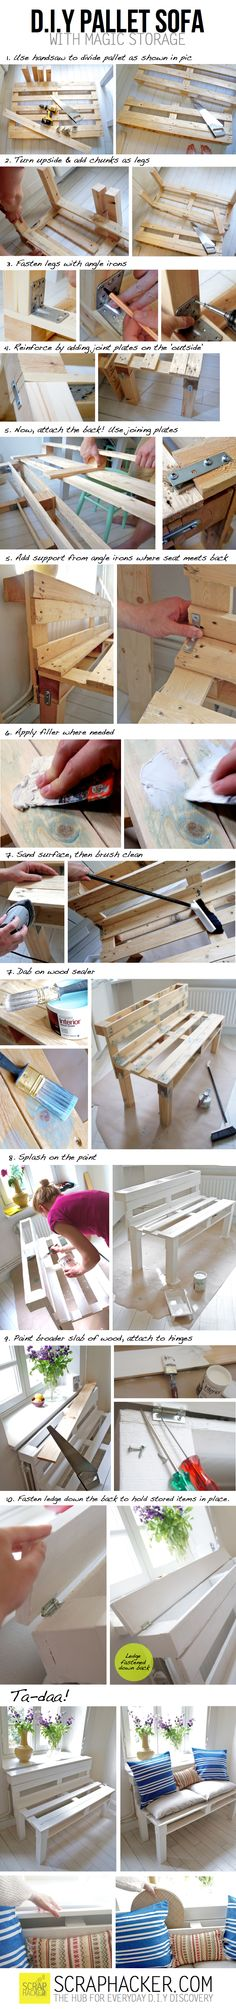 Diy Storage Pallet Sofa Pictures, Photos, and Images for Facebook, Tumblr, Pinterest, and Twitter